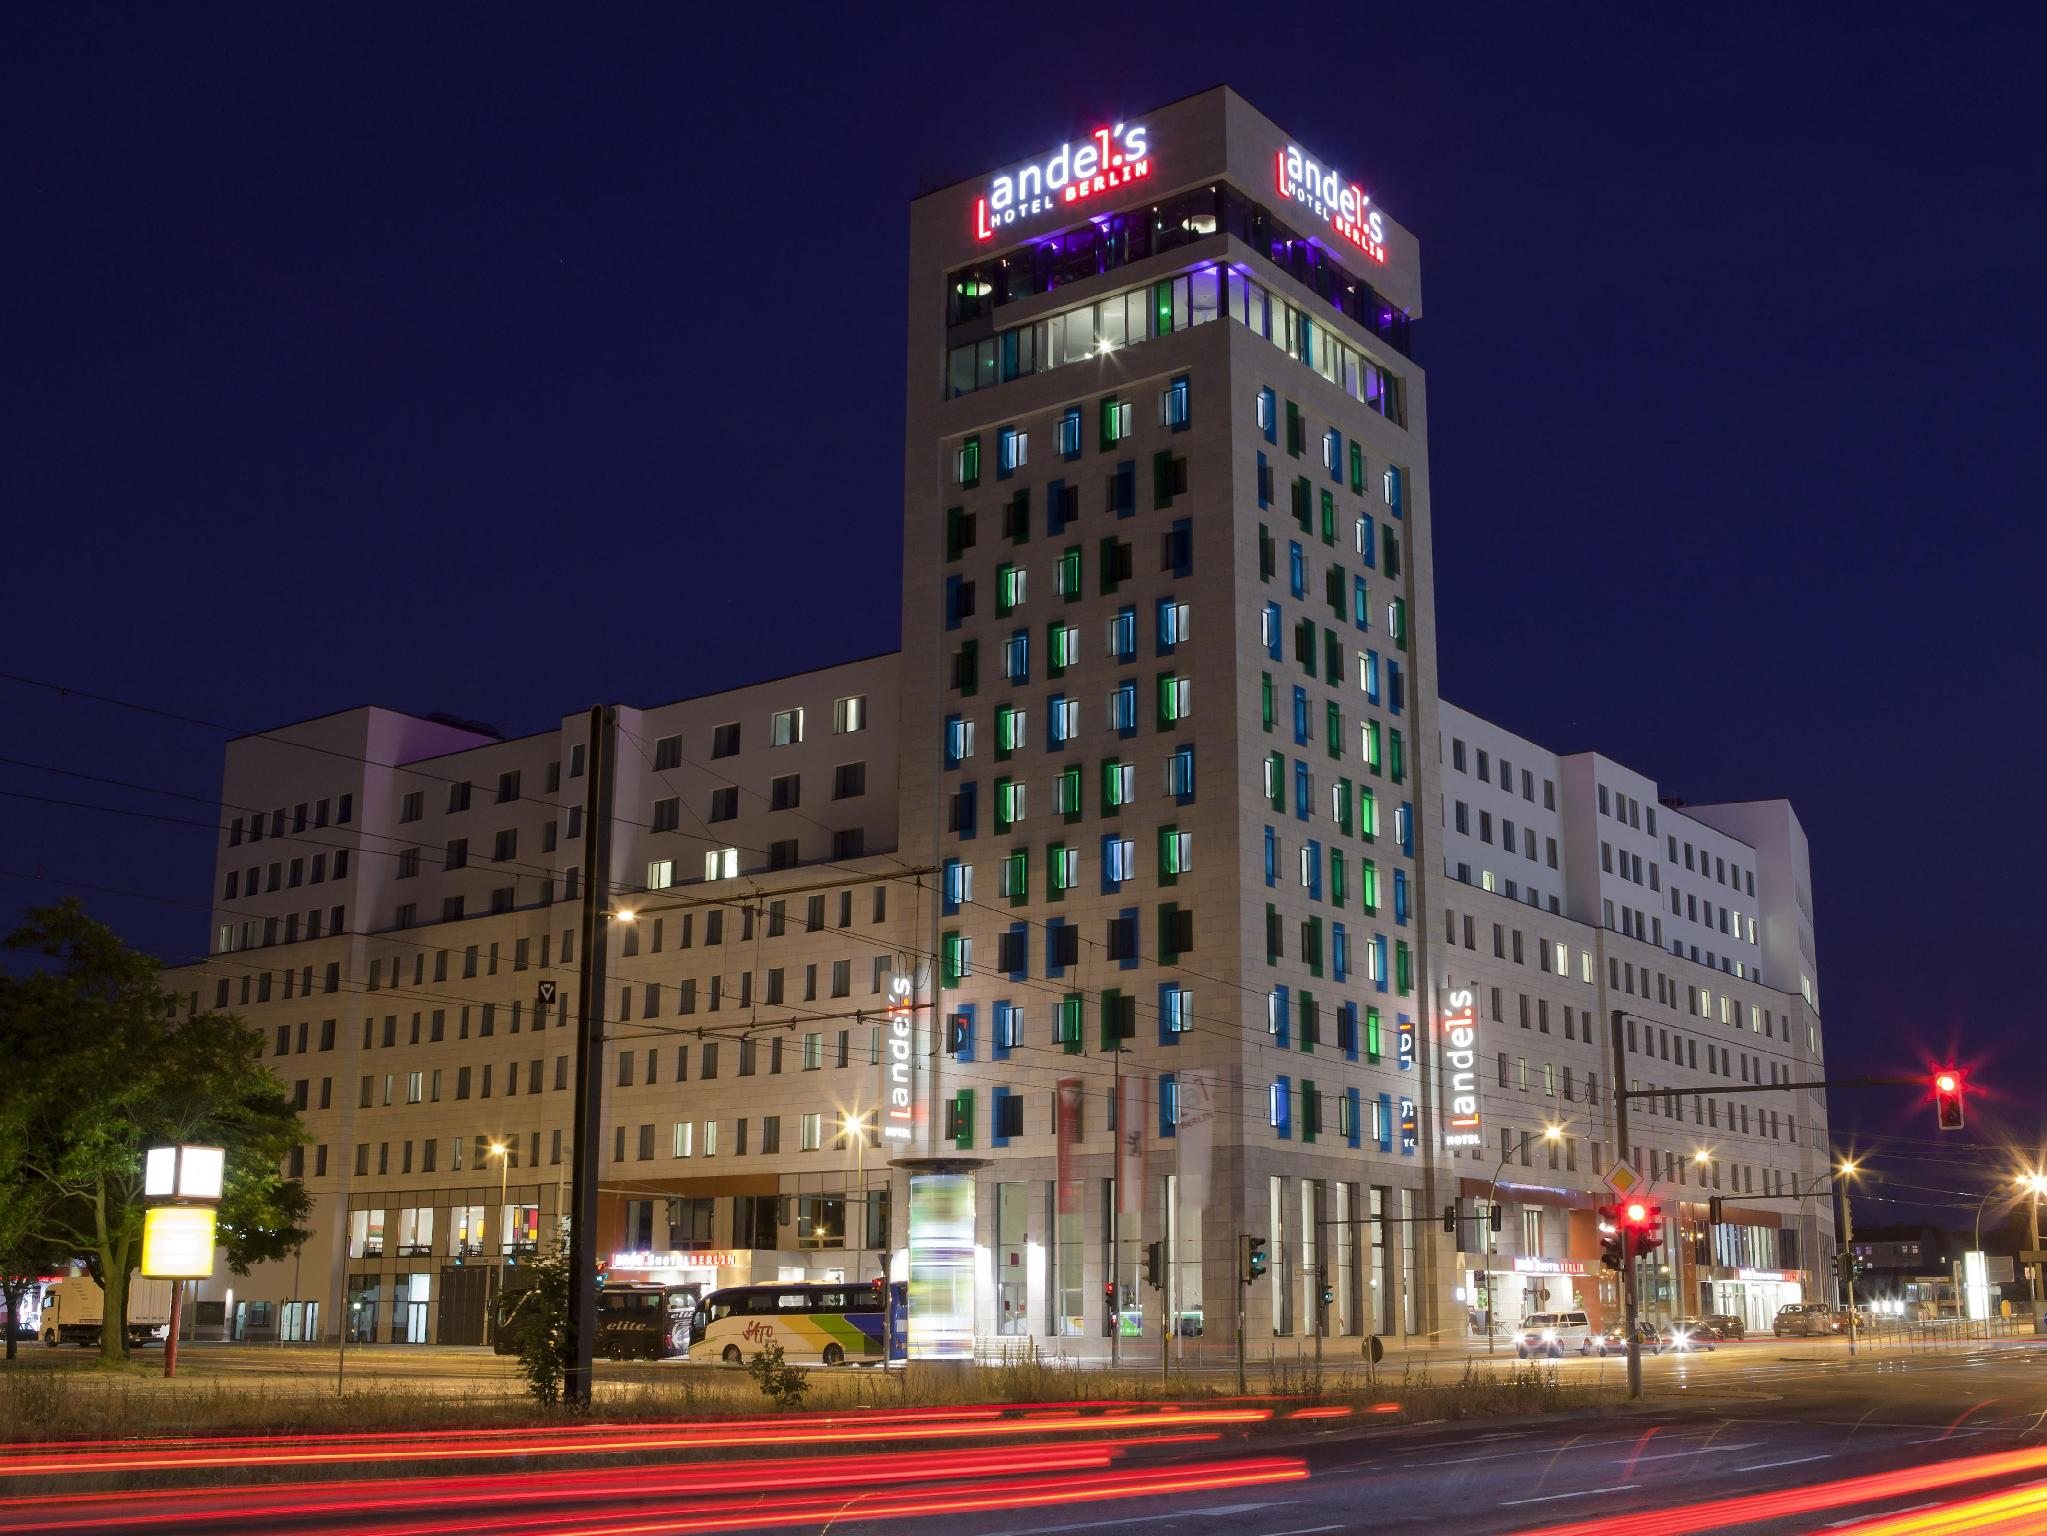 andel's Hotel Berlin, managed by Vienna International Hotels and Resorts Berlin - Pandangan